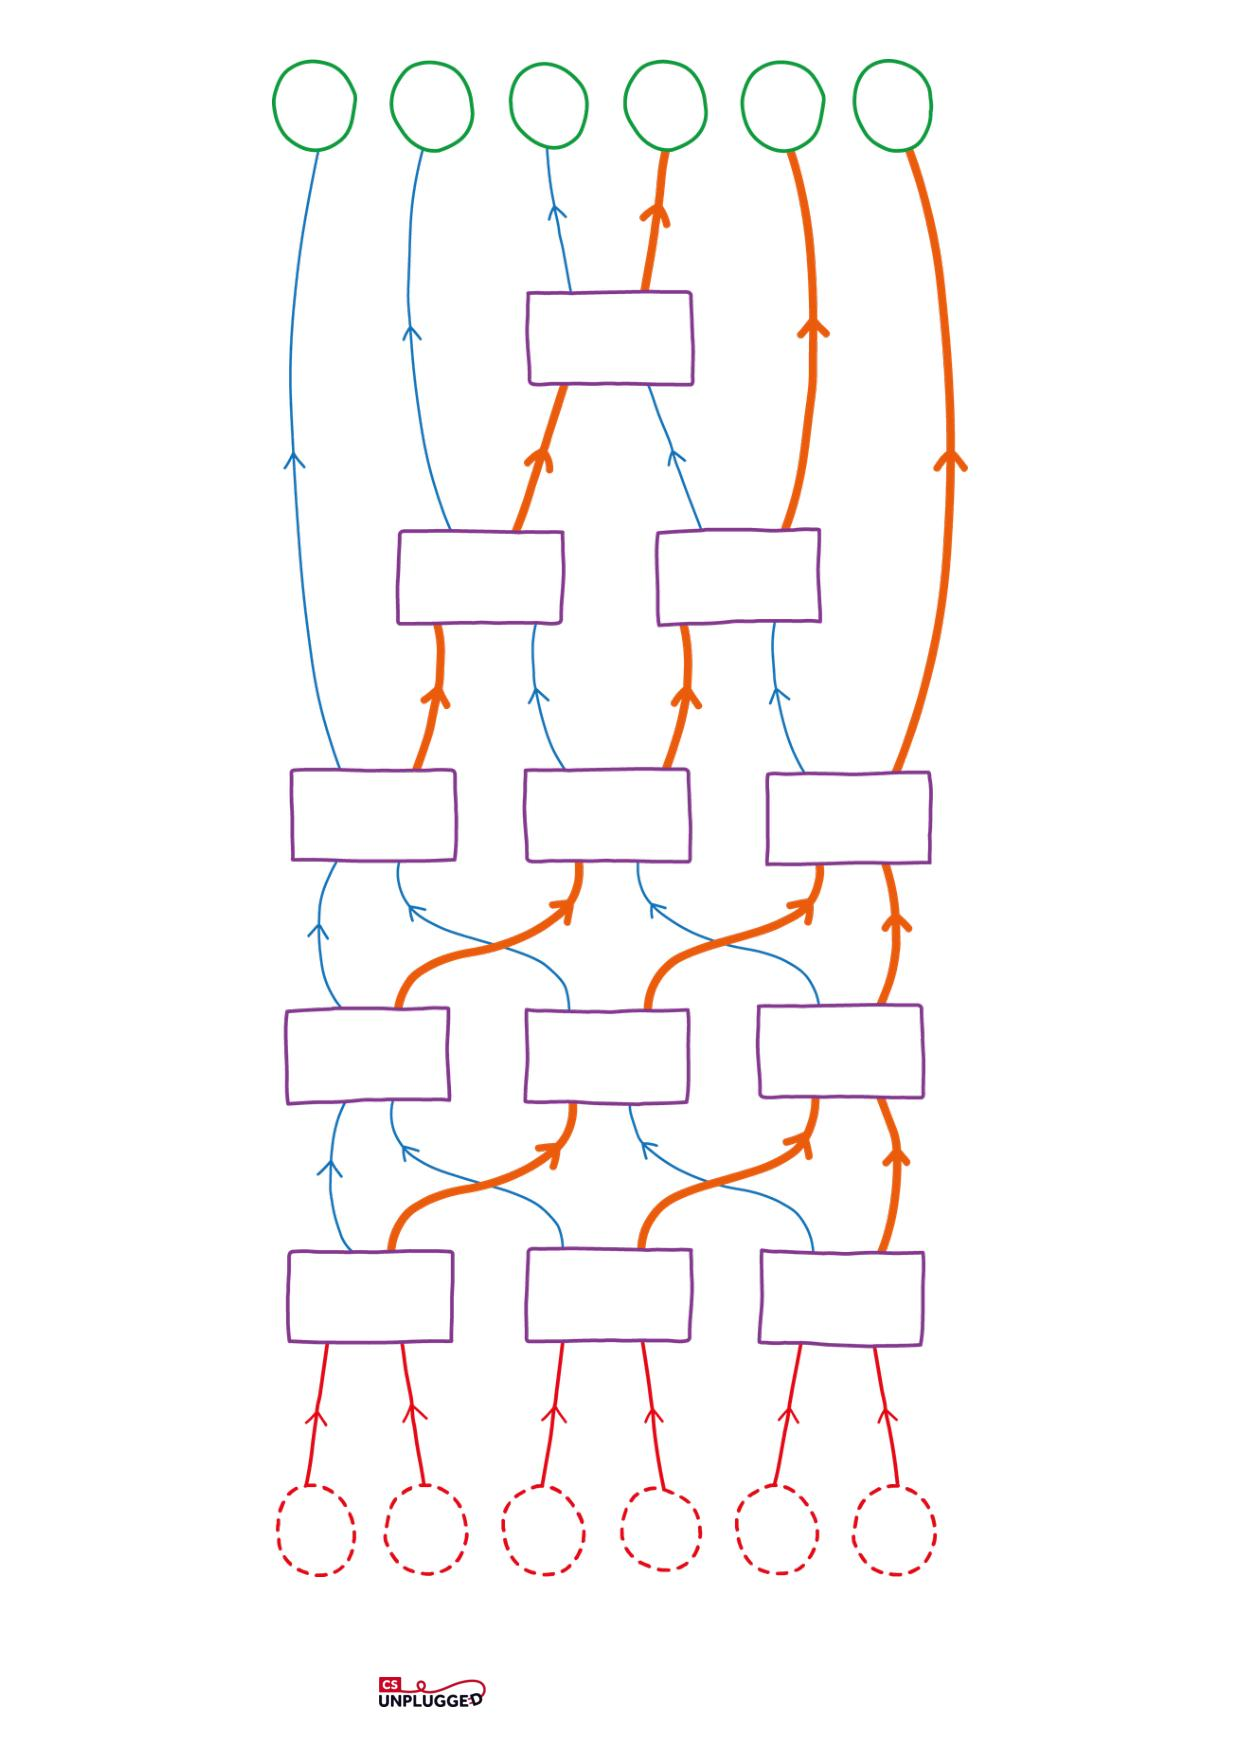 Sorting Network (None (Blank - Useful as template) - a4)_1-1-page-001.jpg